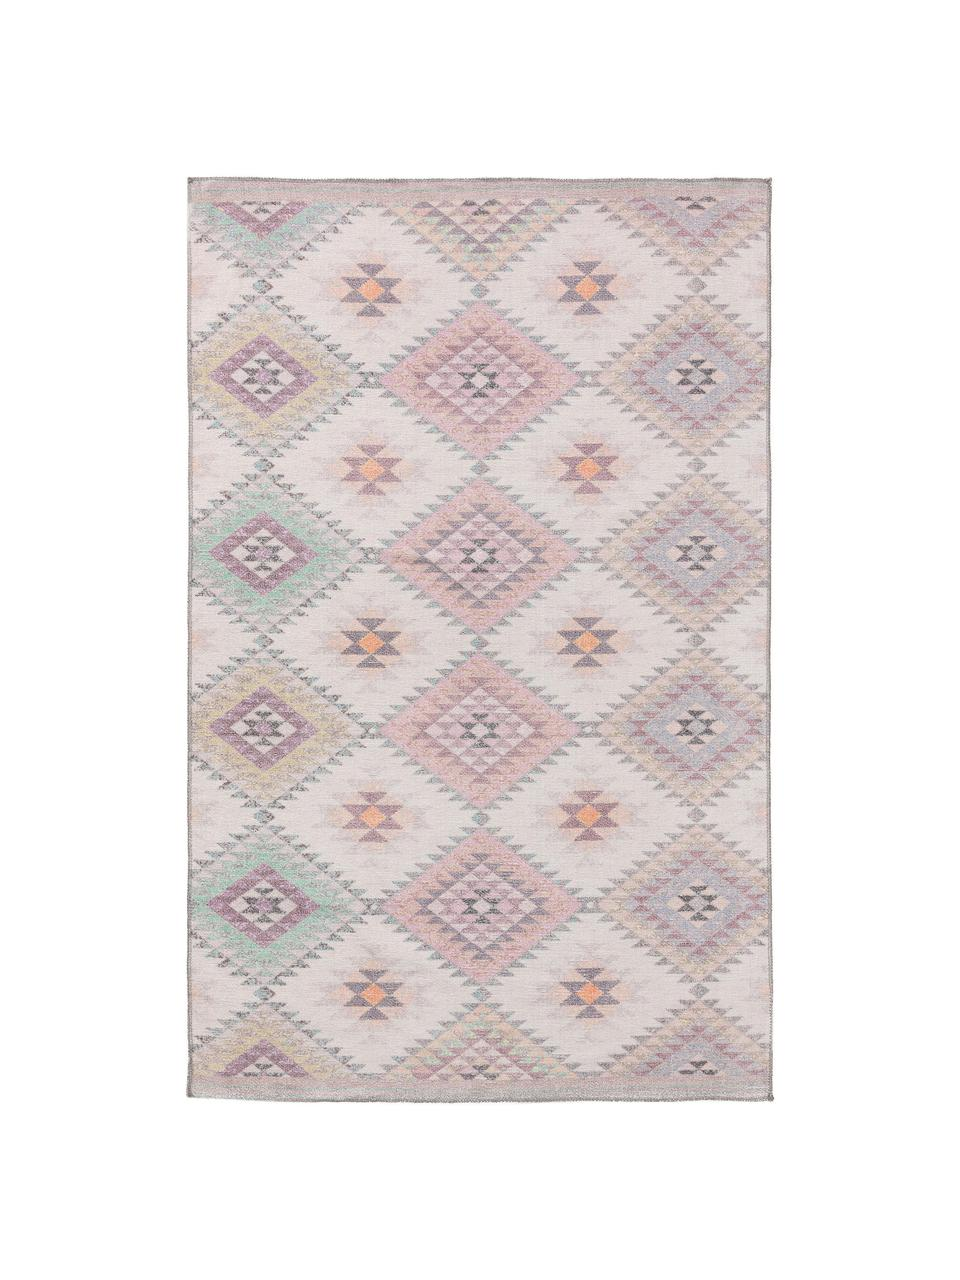 Tapis kilim ethnique réversible Kelim Ana, Rose, multicolore